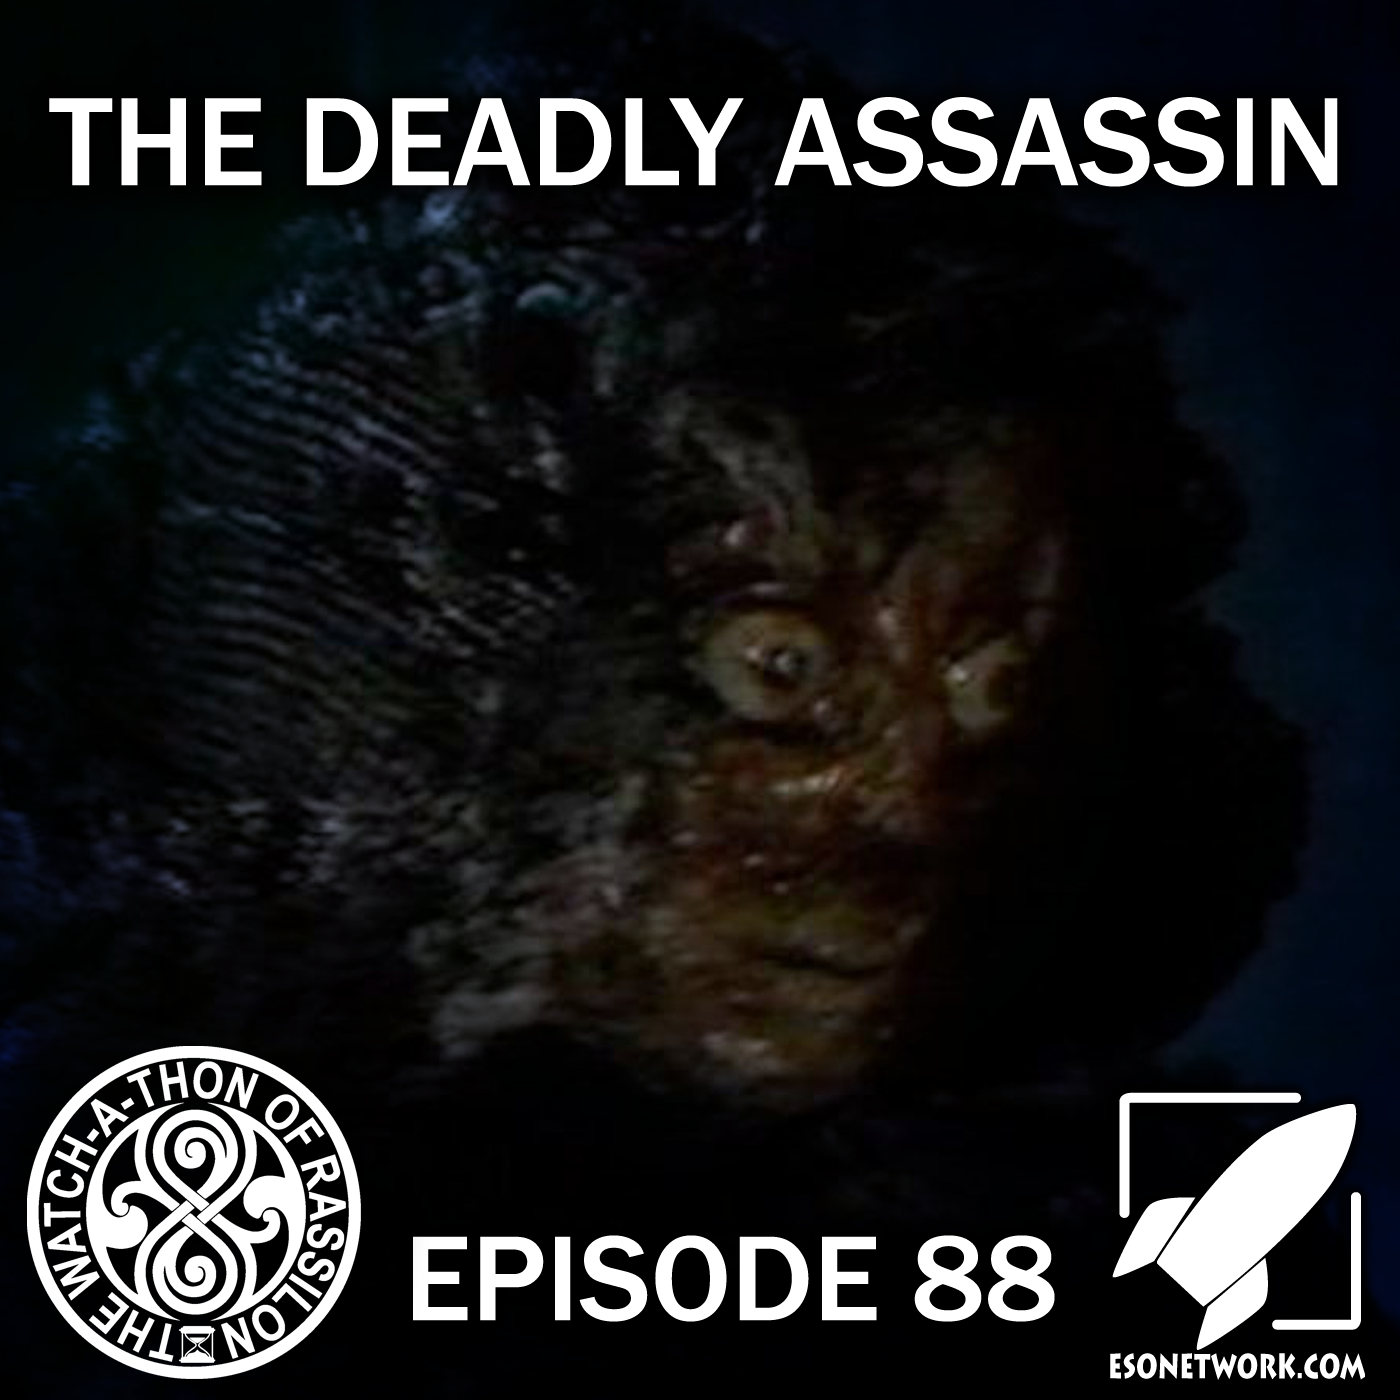 The Watch-A-Thon of Rassilon: Episode 88: The Deadly Assassin